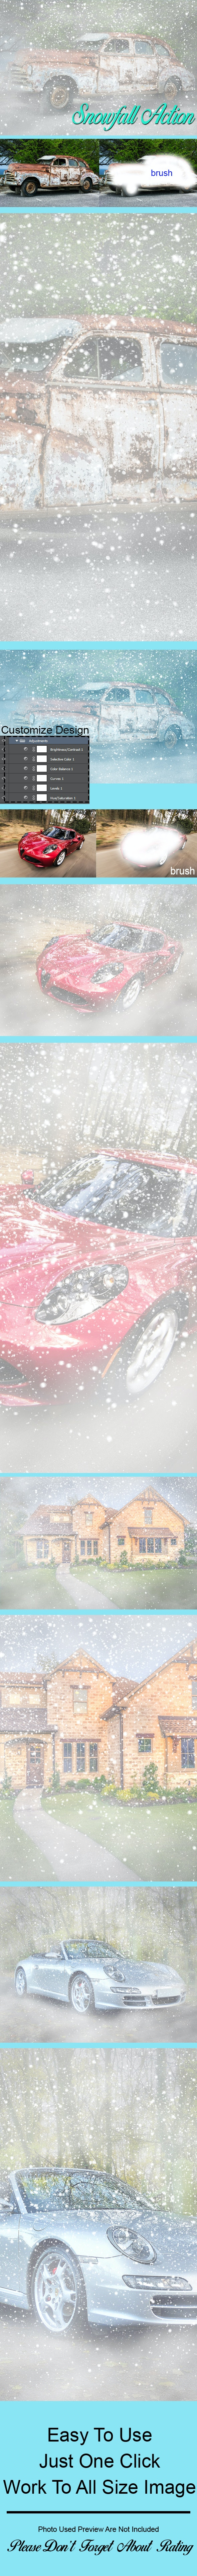 Snowfall Photoshop Action Vol 1 - Photo Effects Actions